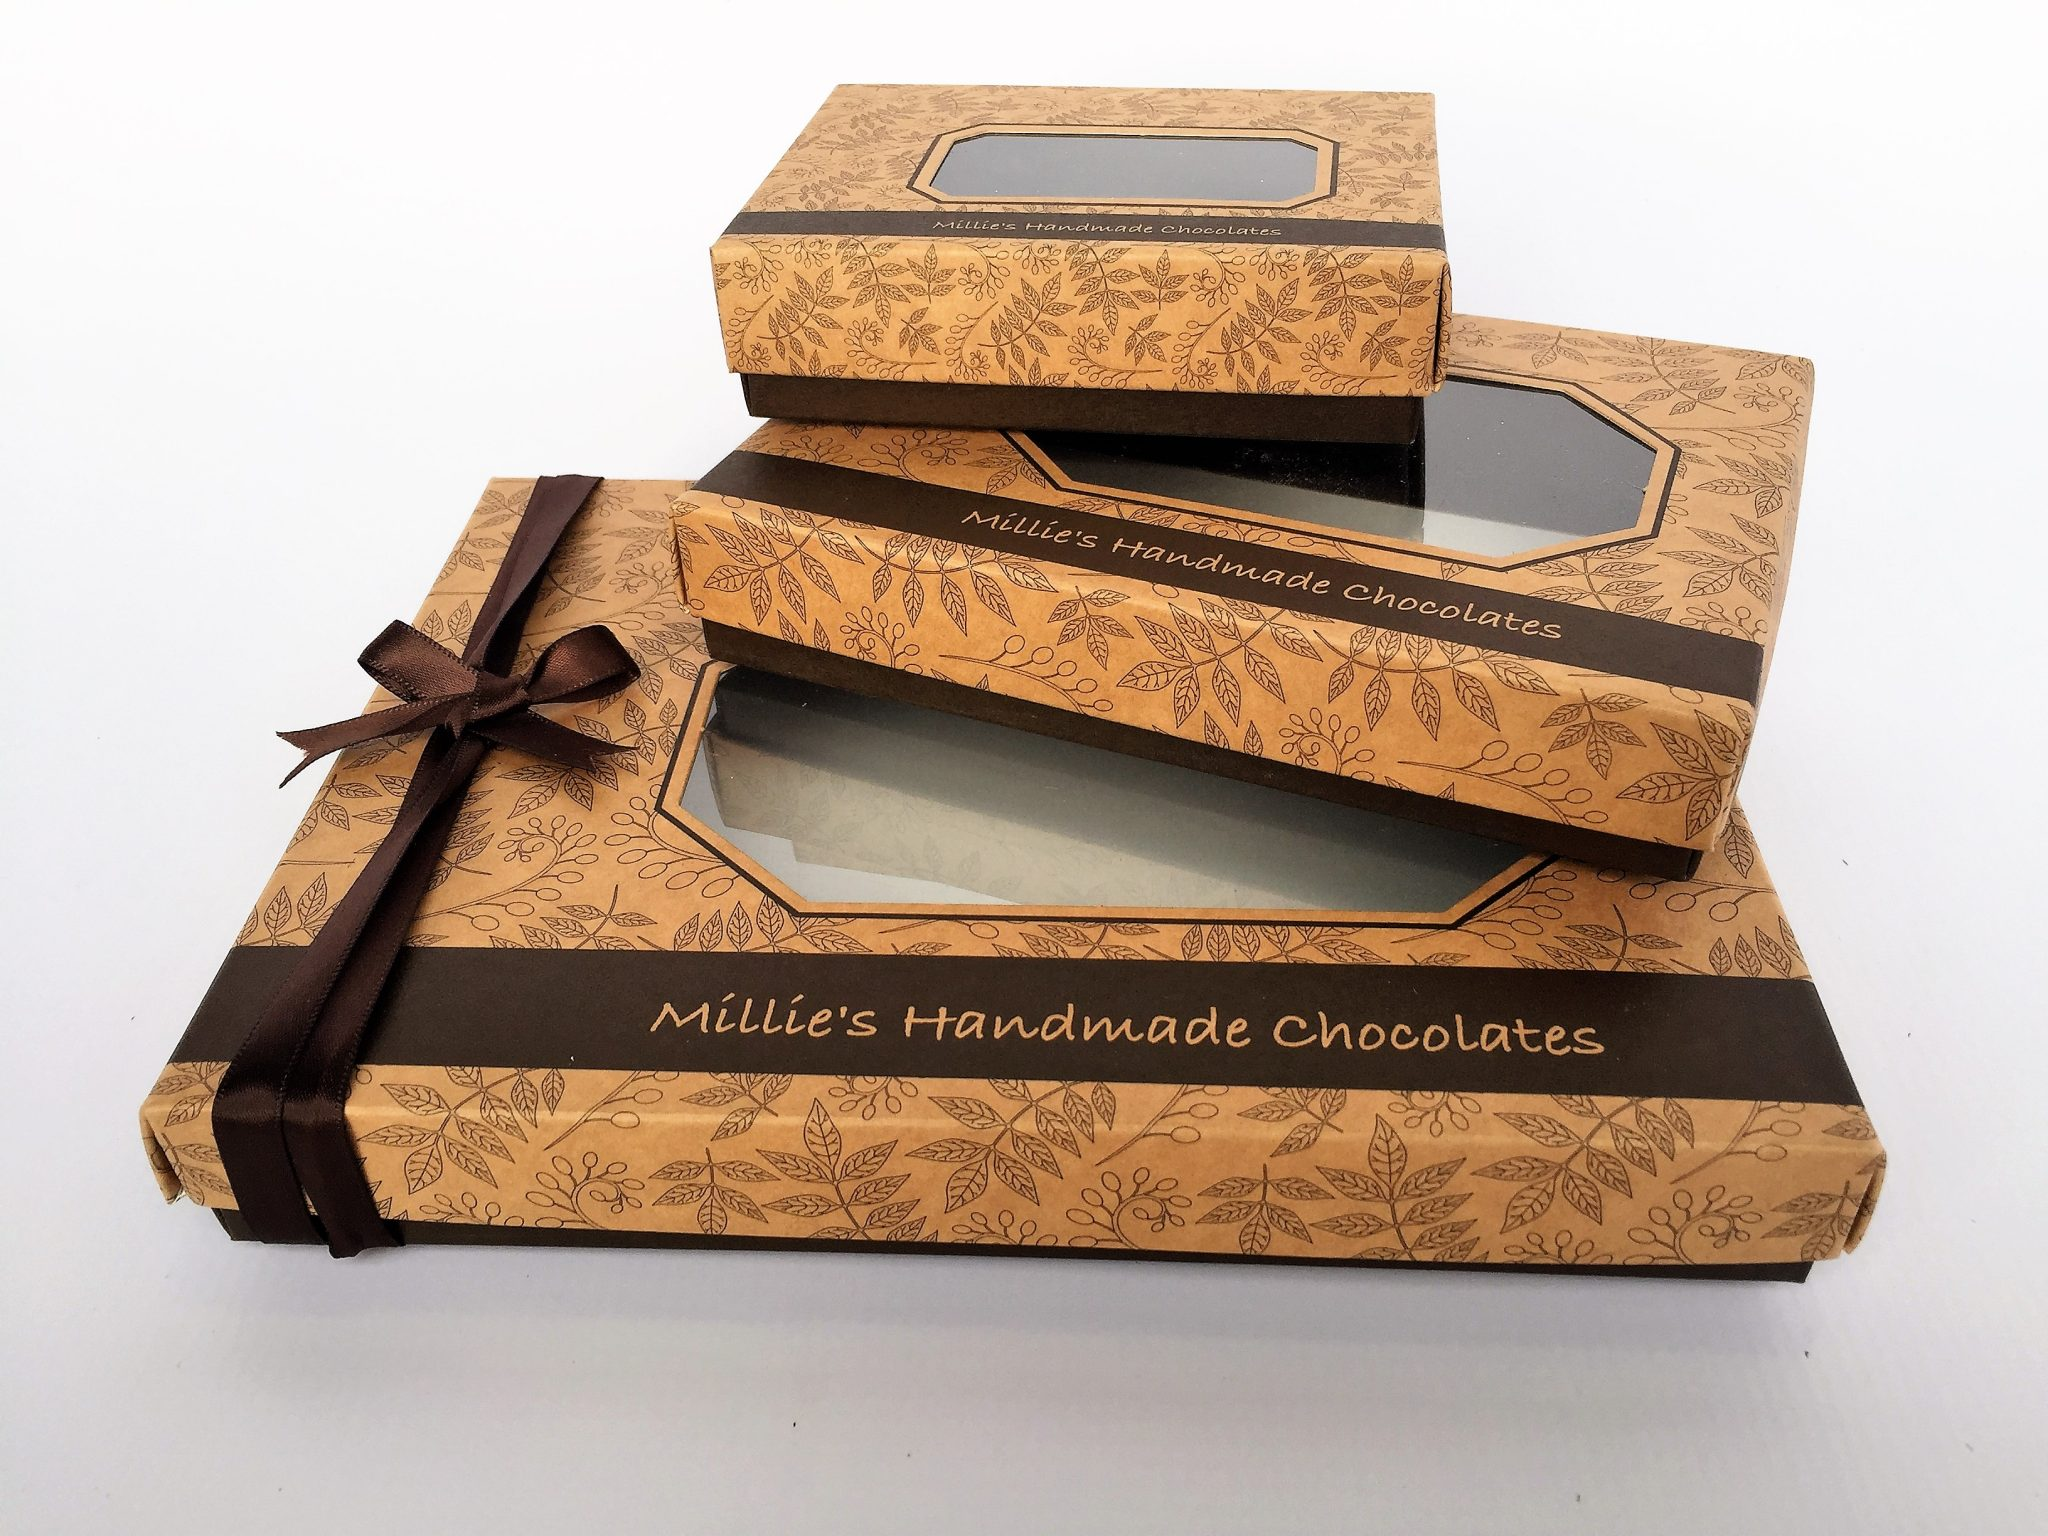 Branded Chocolate/Truffle Boxes